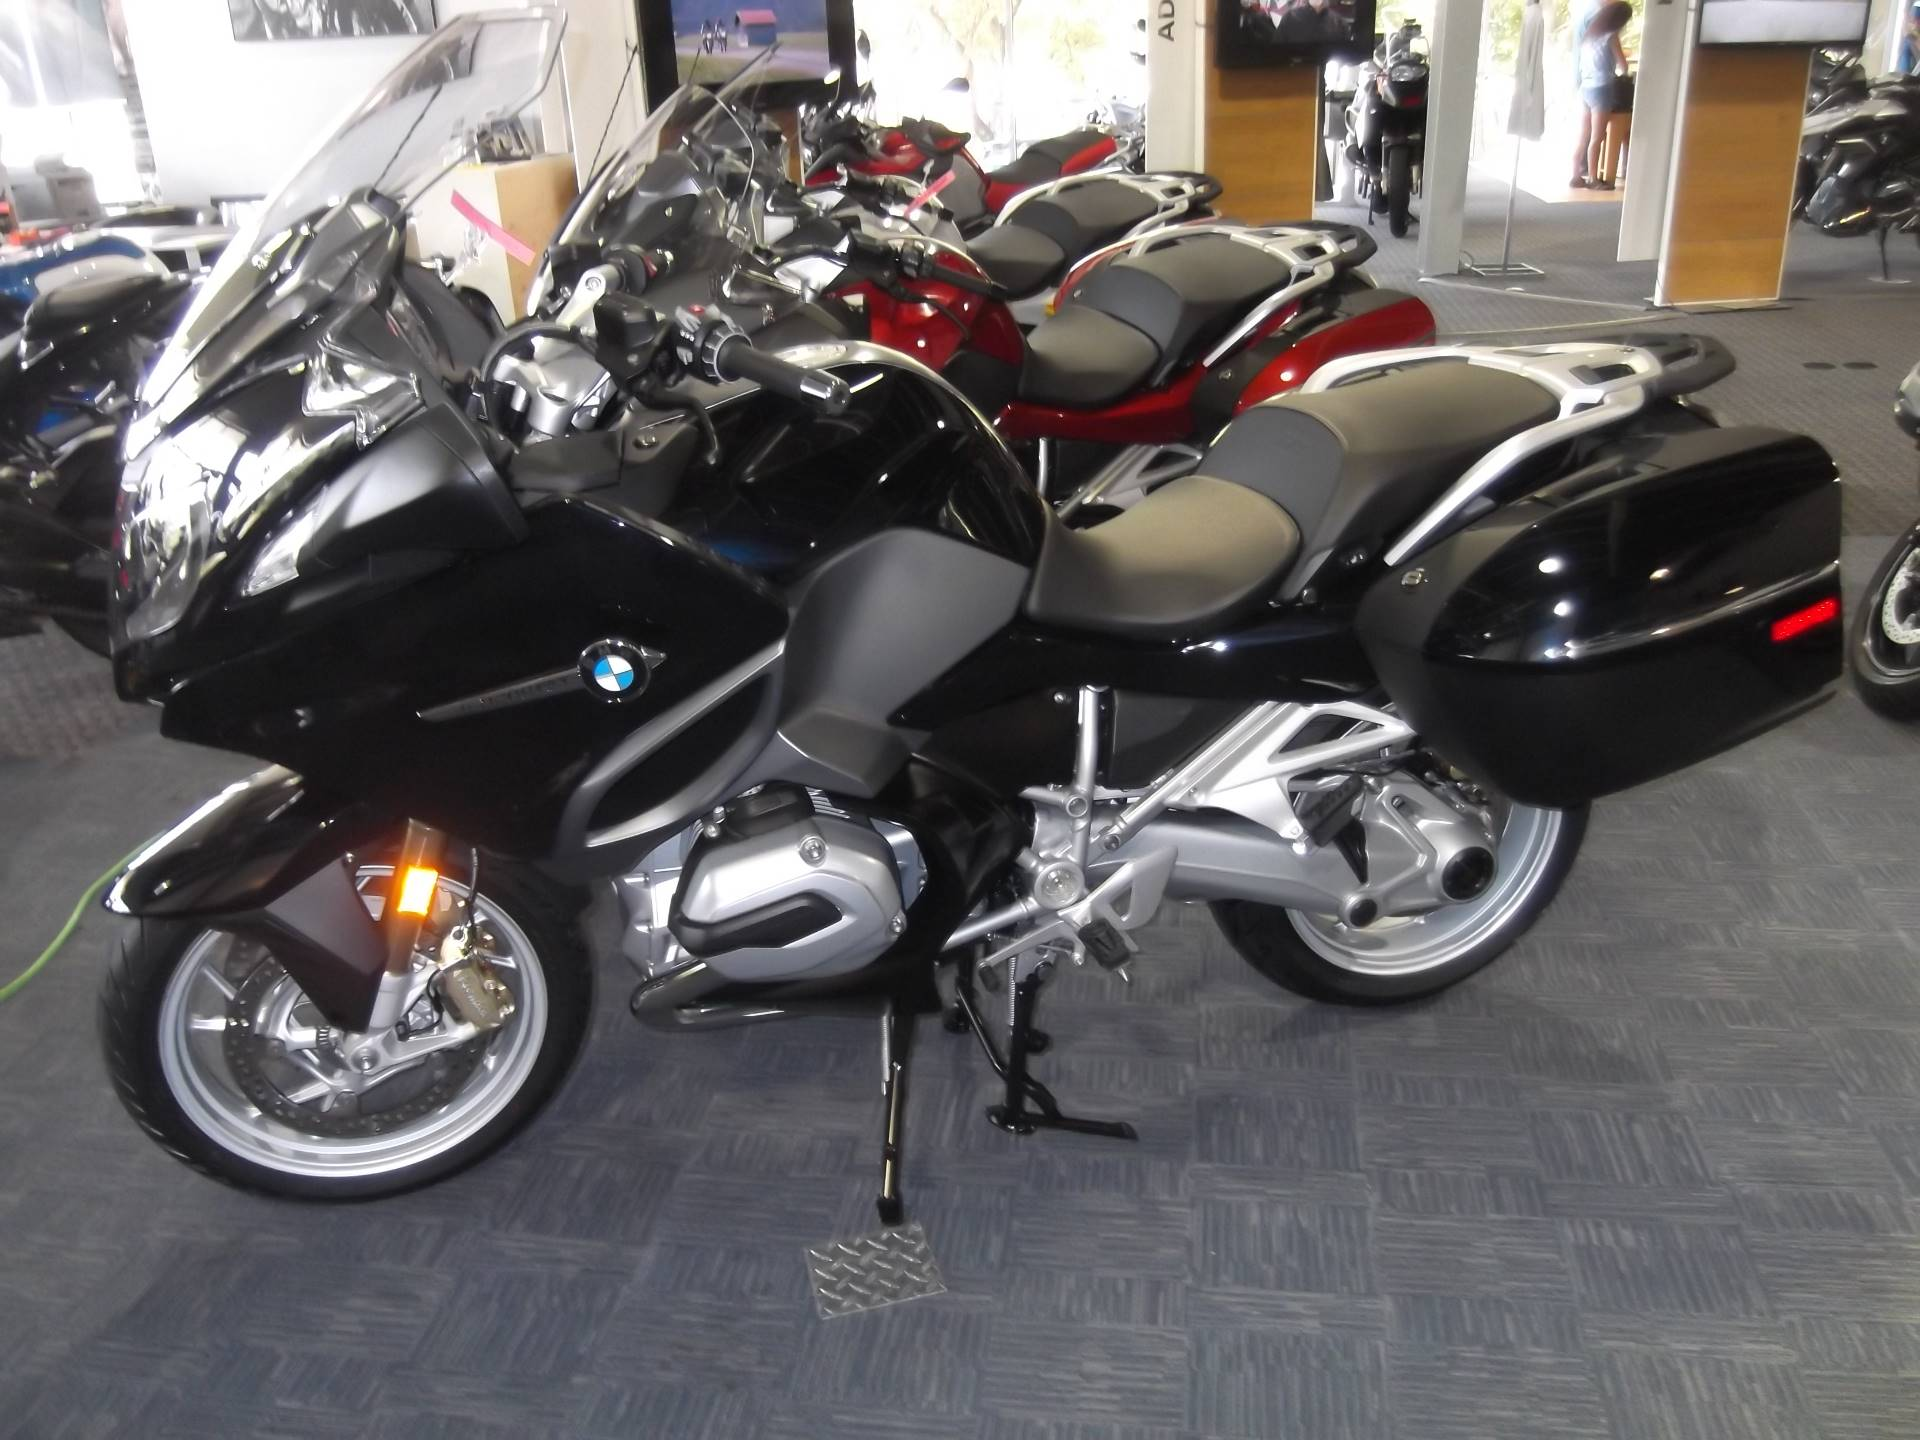 New 2018 BMW R 1200 RT Motorcycles in Boerne, TX